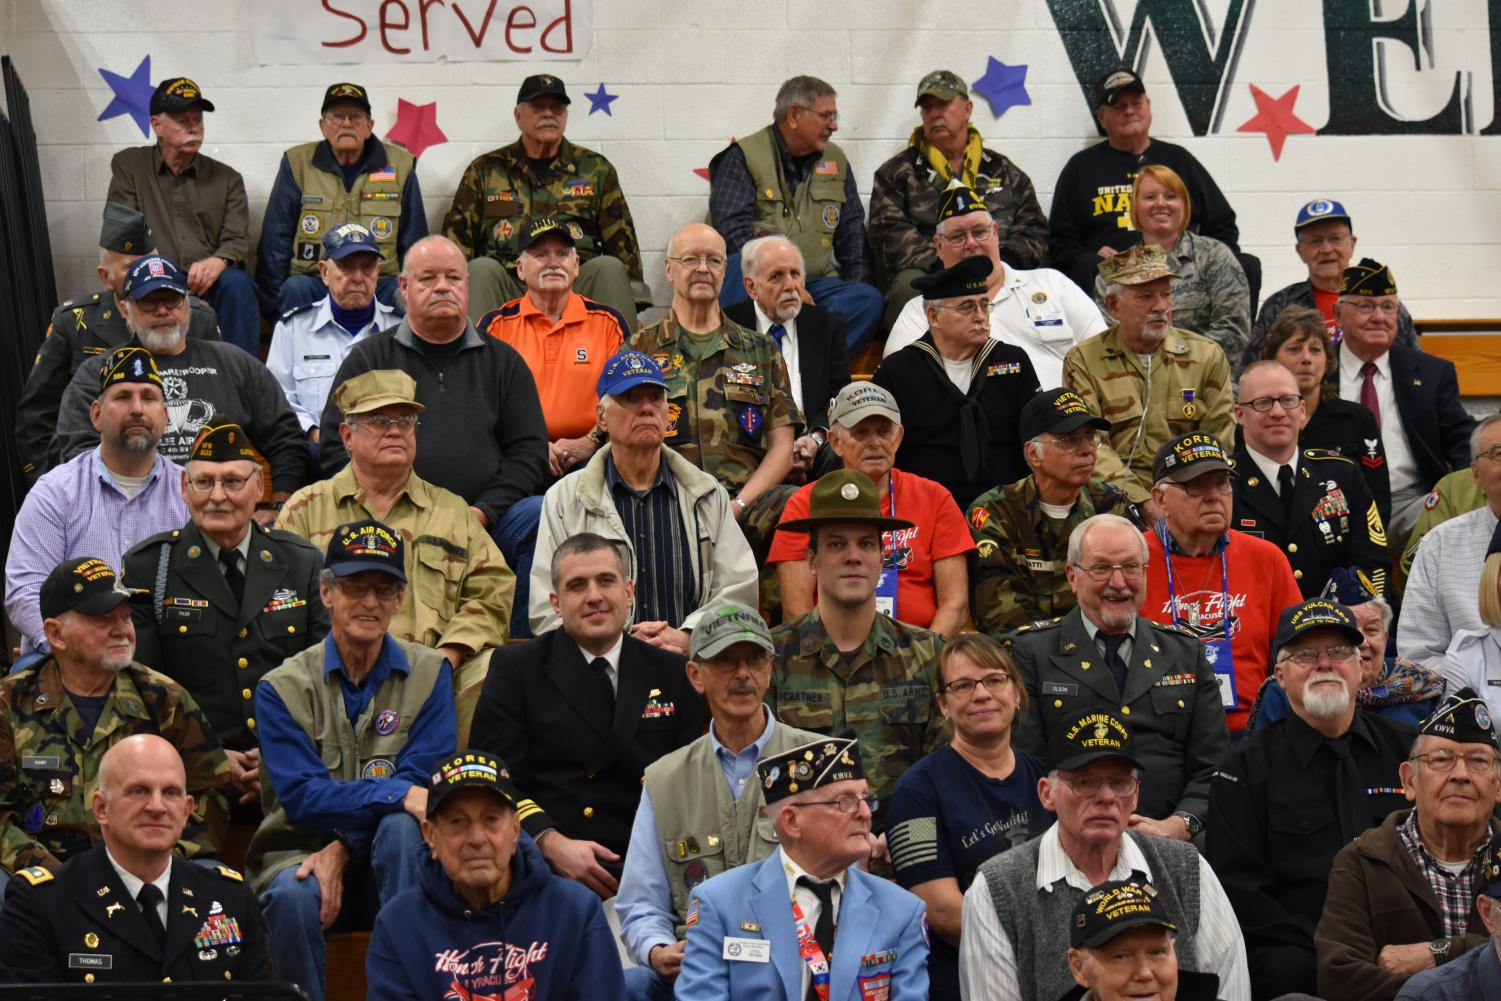 Veterans+from+all+branches+of+the+military+joined+us+today+for+the+show.